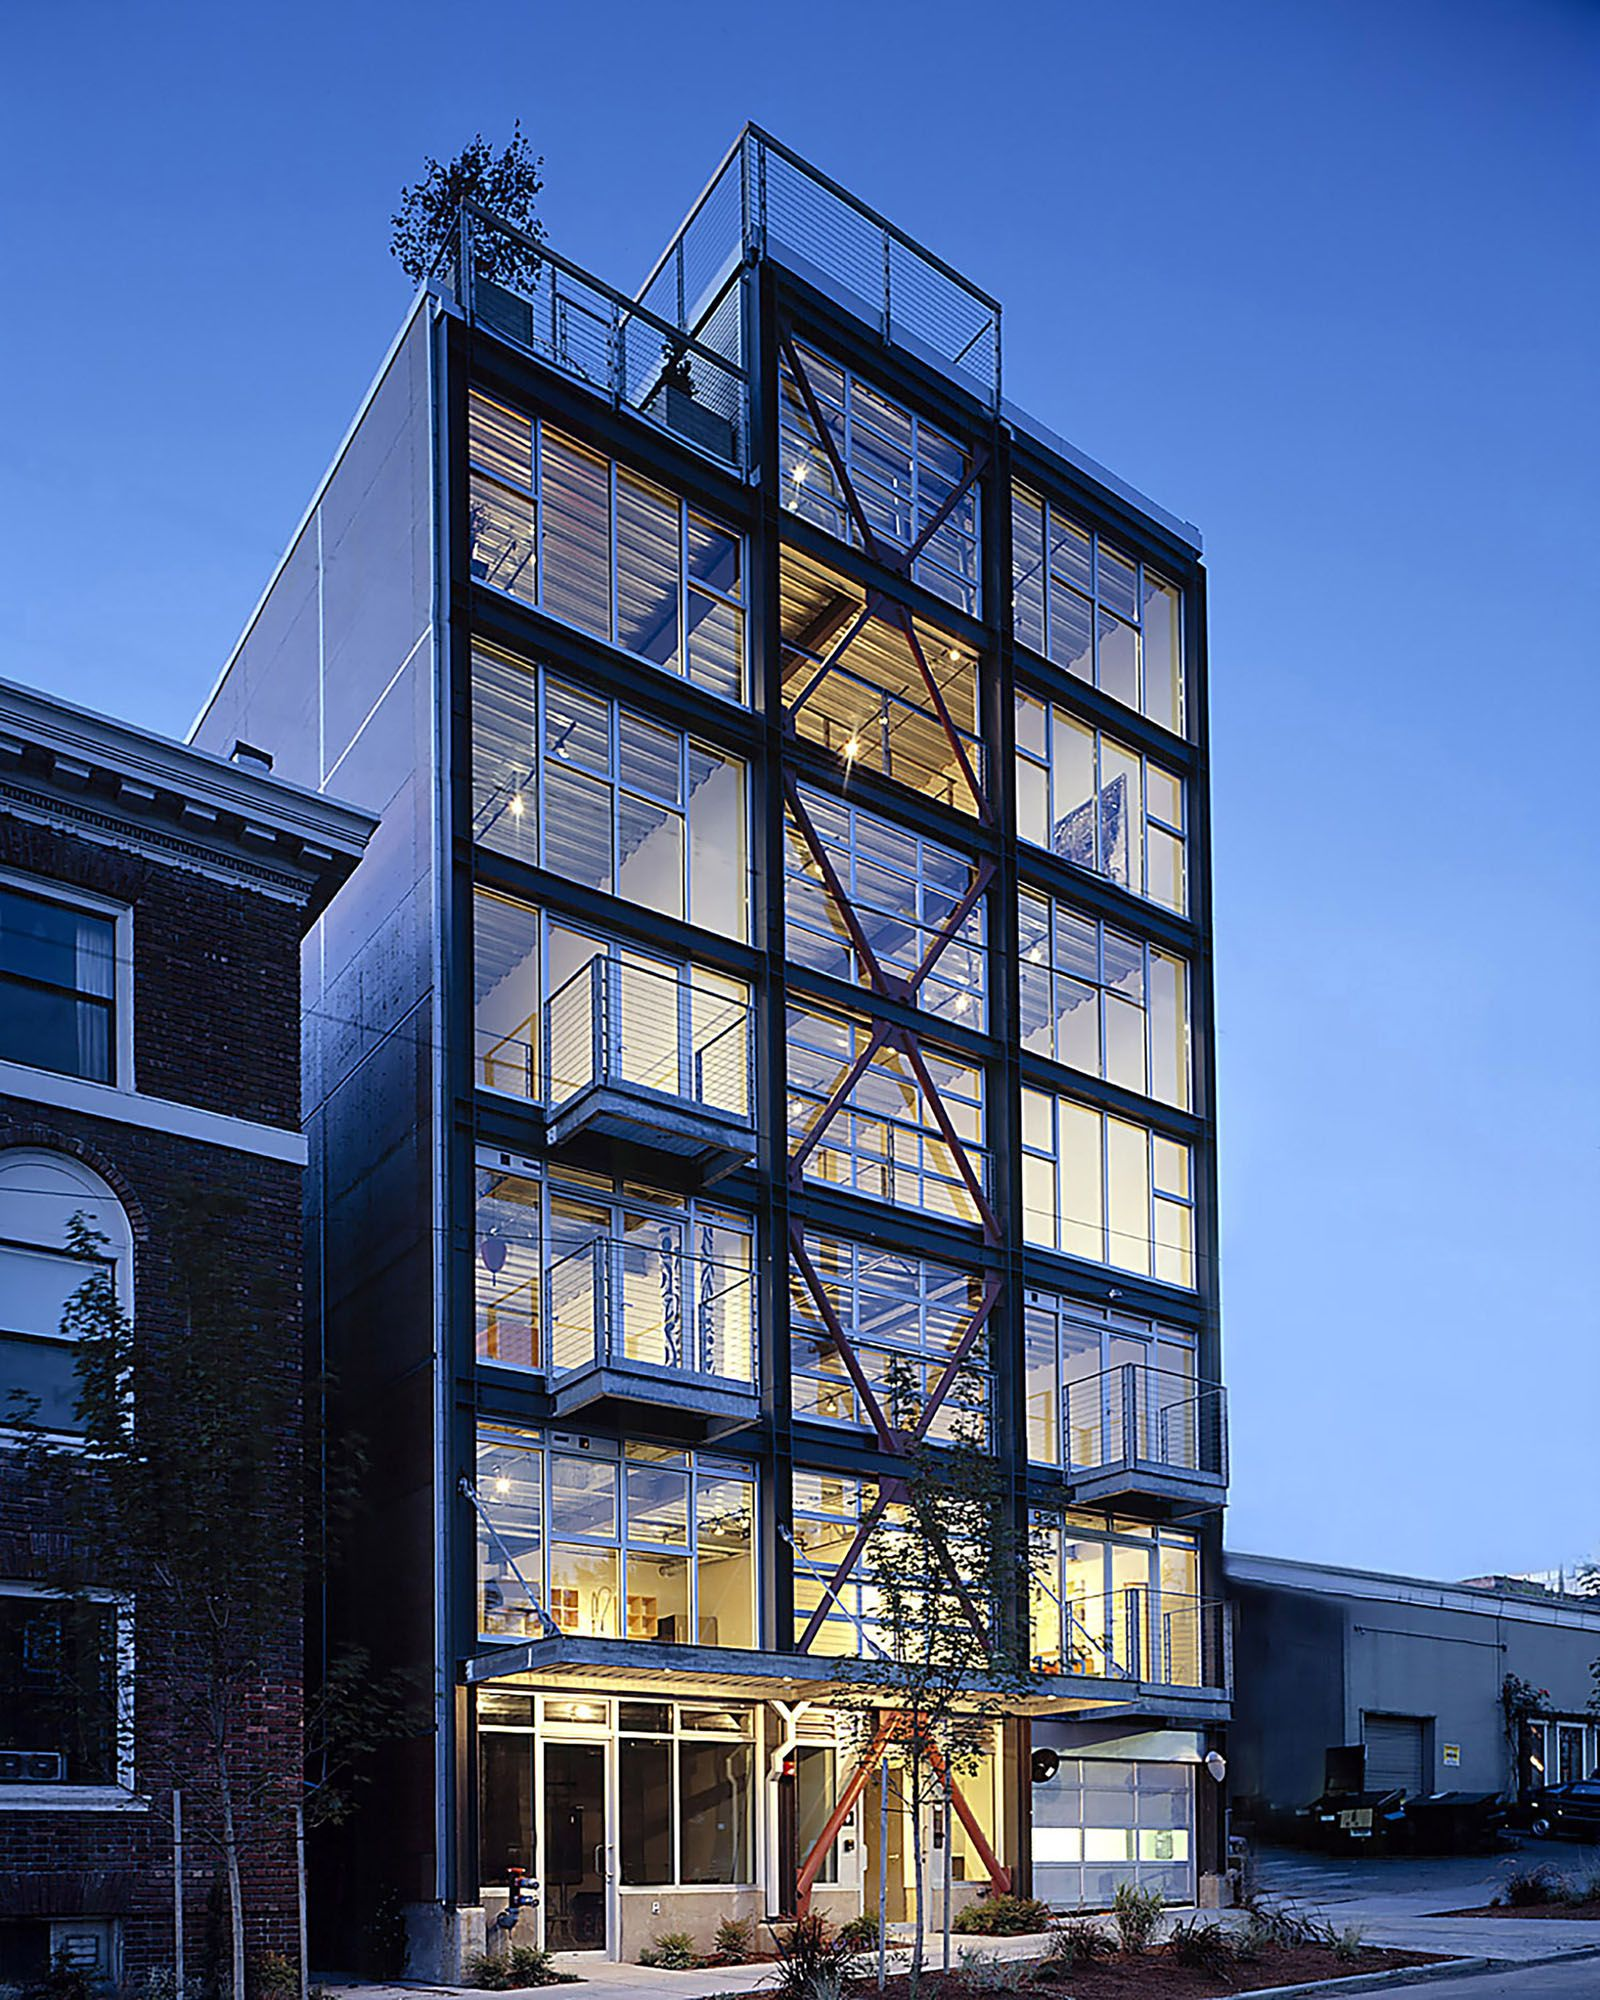 Apartment Buildings In Seattle capitol hill seattle loft apartment building | cool architectural